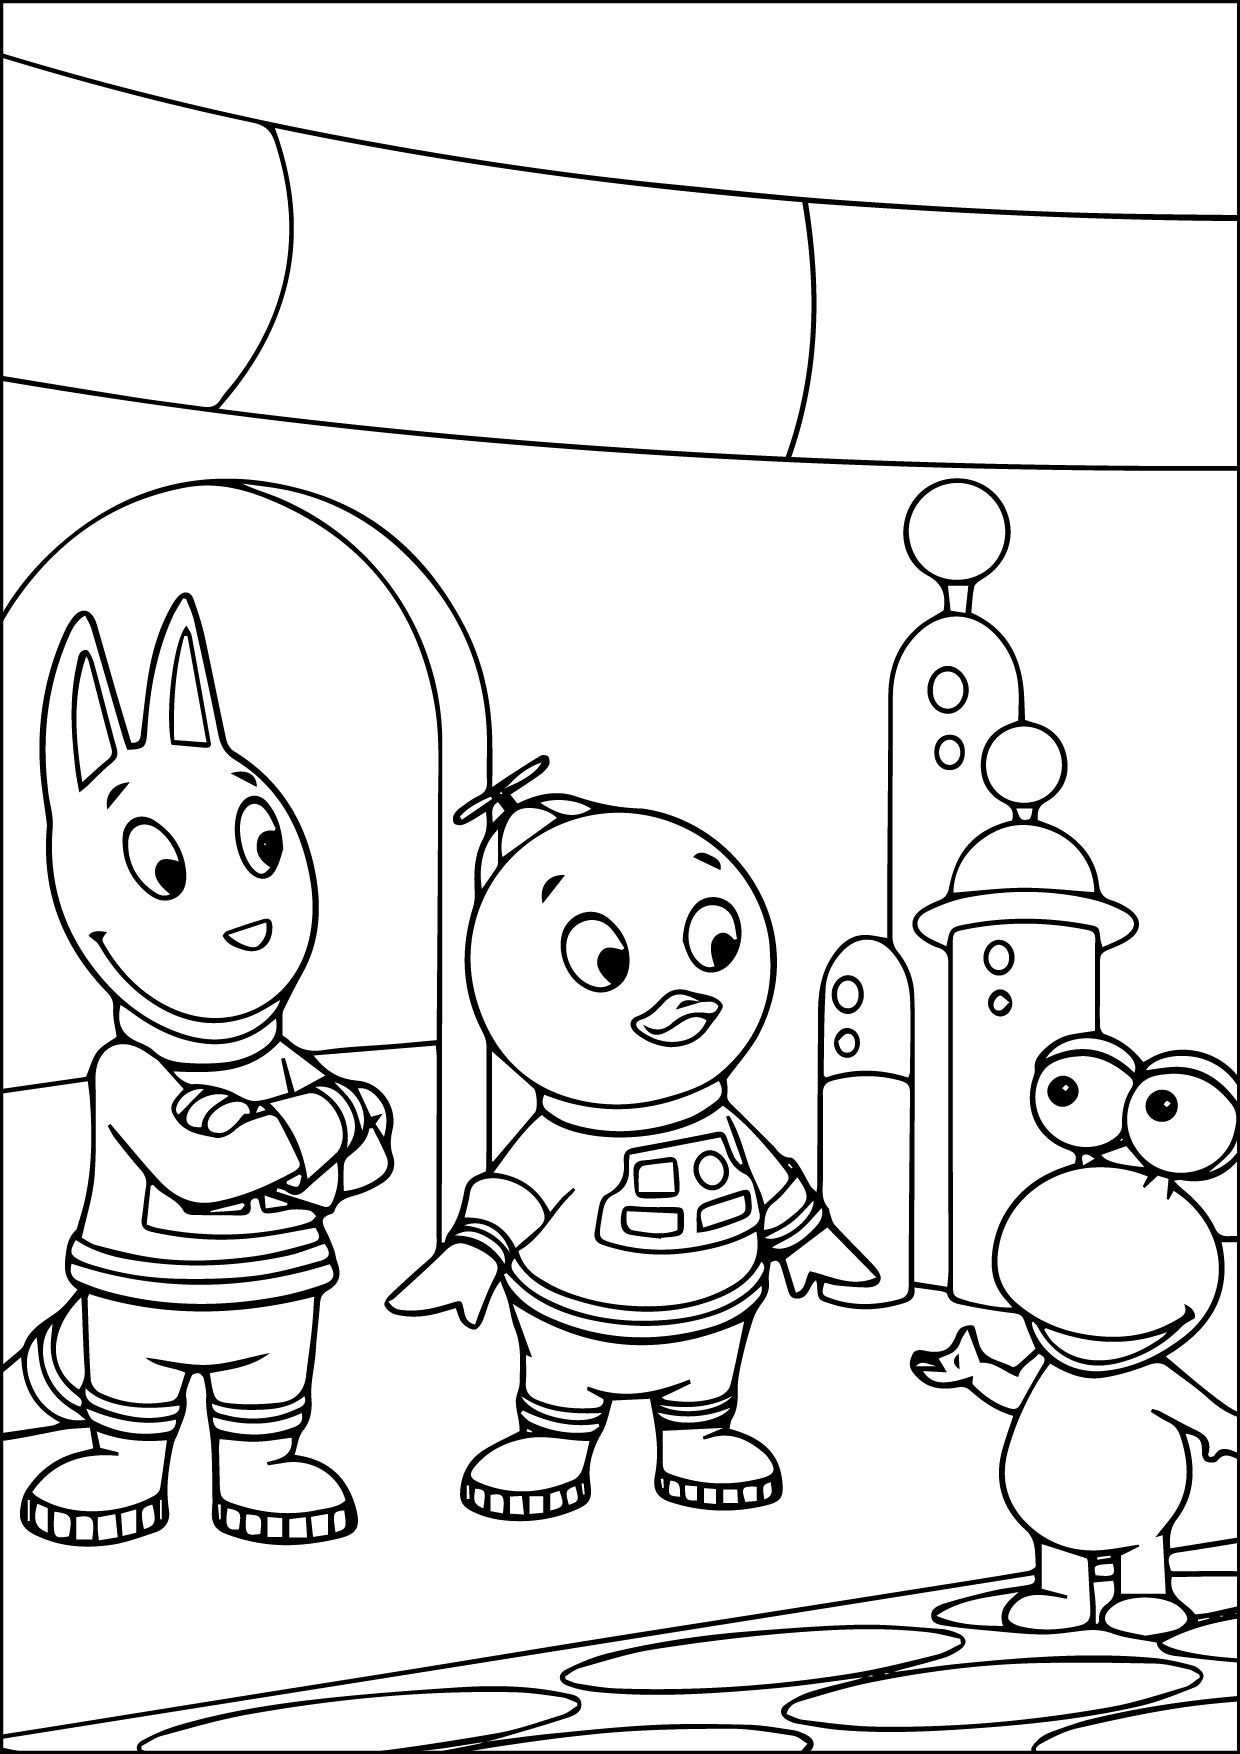 backyardigans coloring pages cool backyardigans of color 06 09 2015234451 check more pages coloring backyardigans